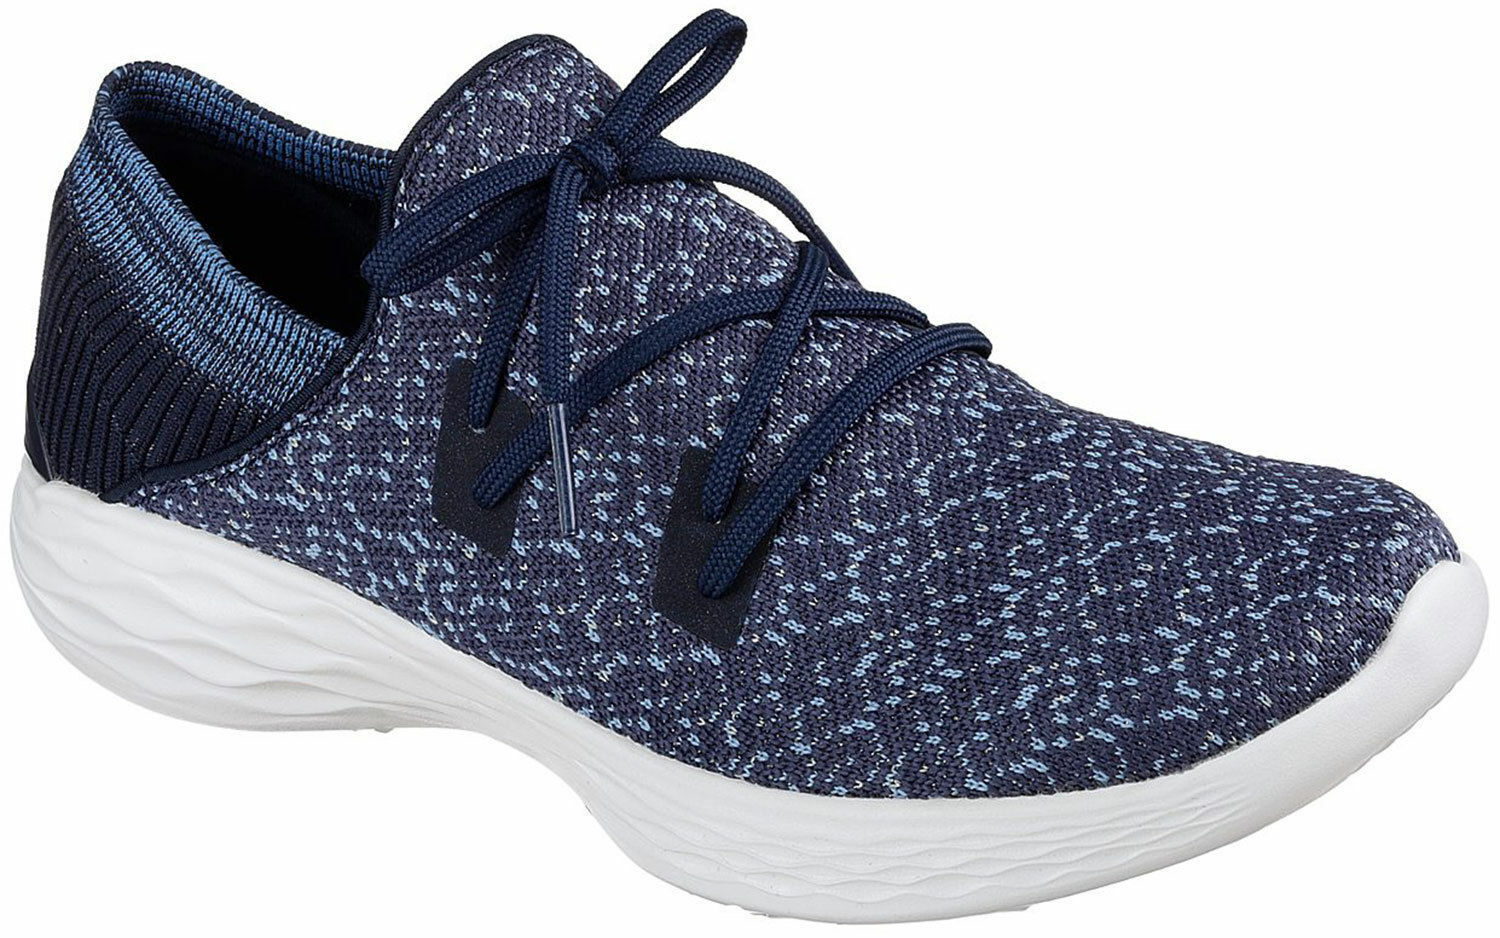 SCARPE YOU SKECHERS DONNA GOGA MAX HIGH REBOUND INSOLE 14964 NVY NAVY BLU EXHALE